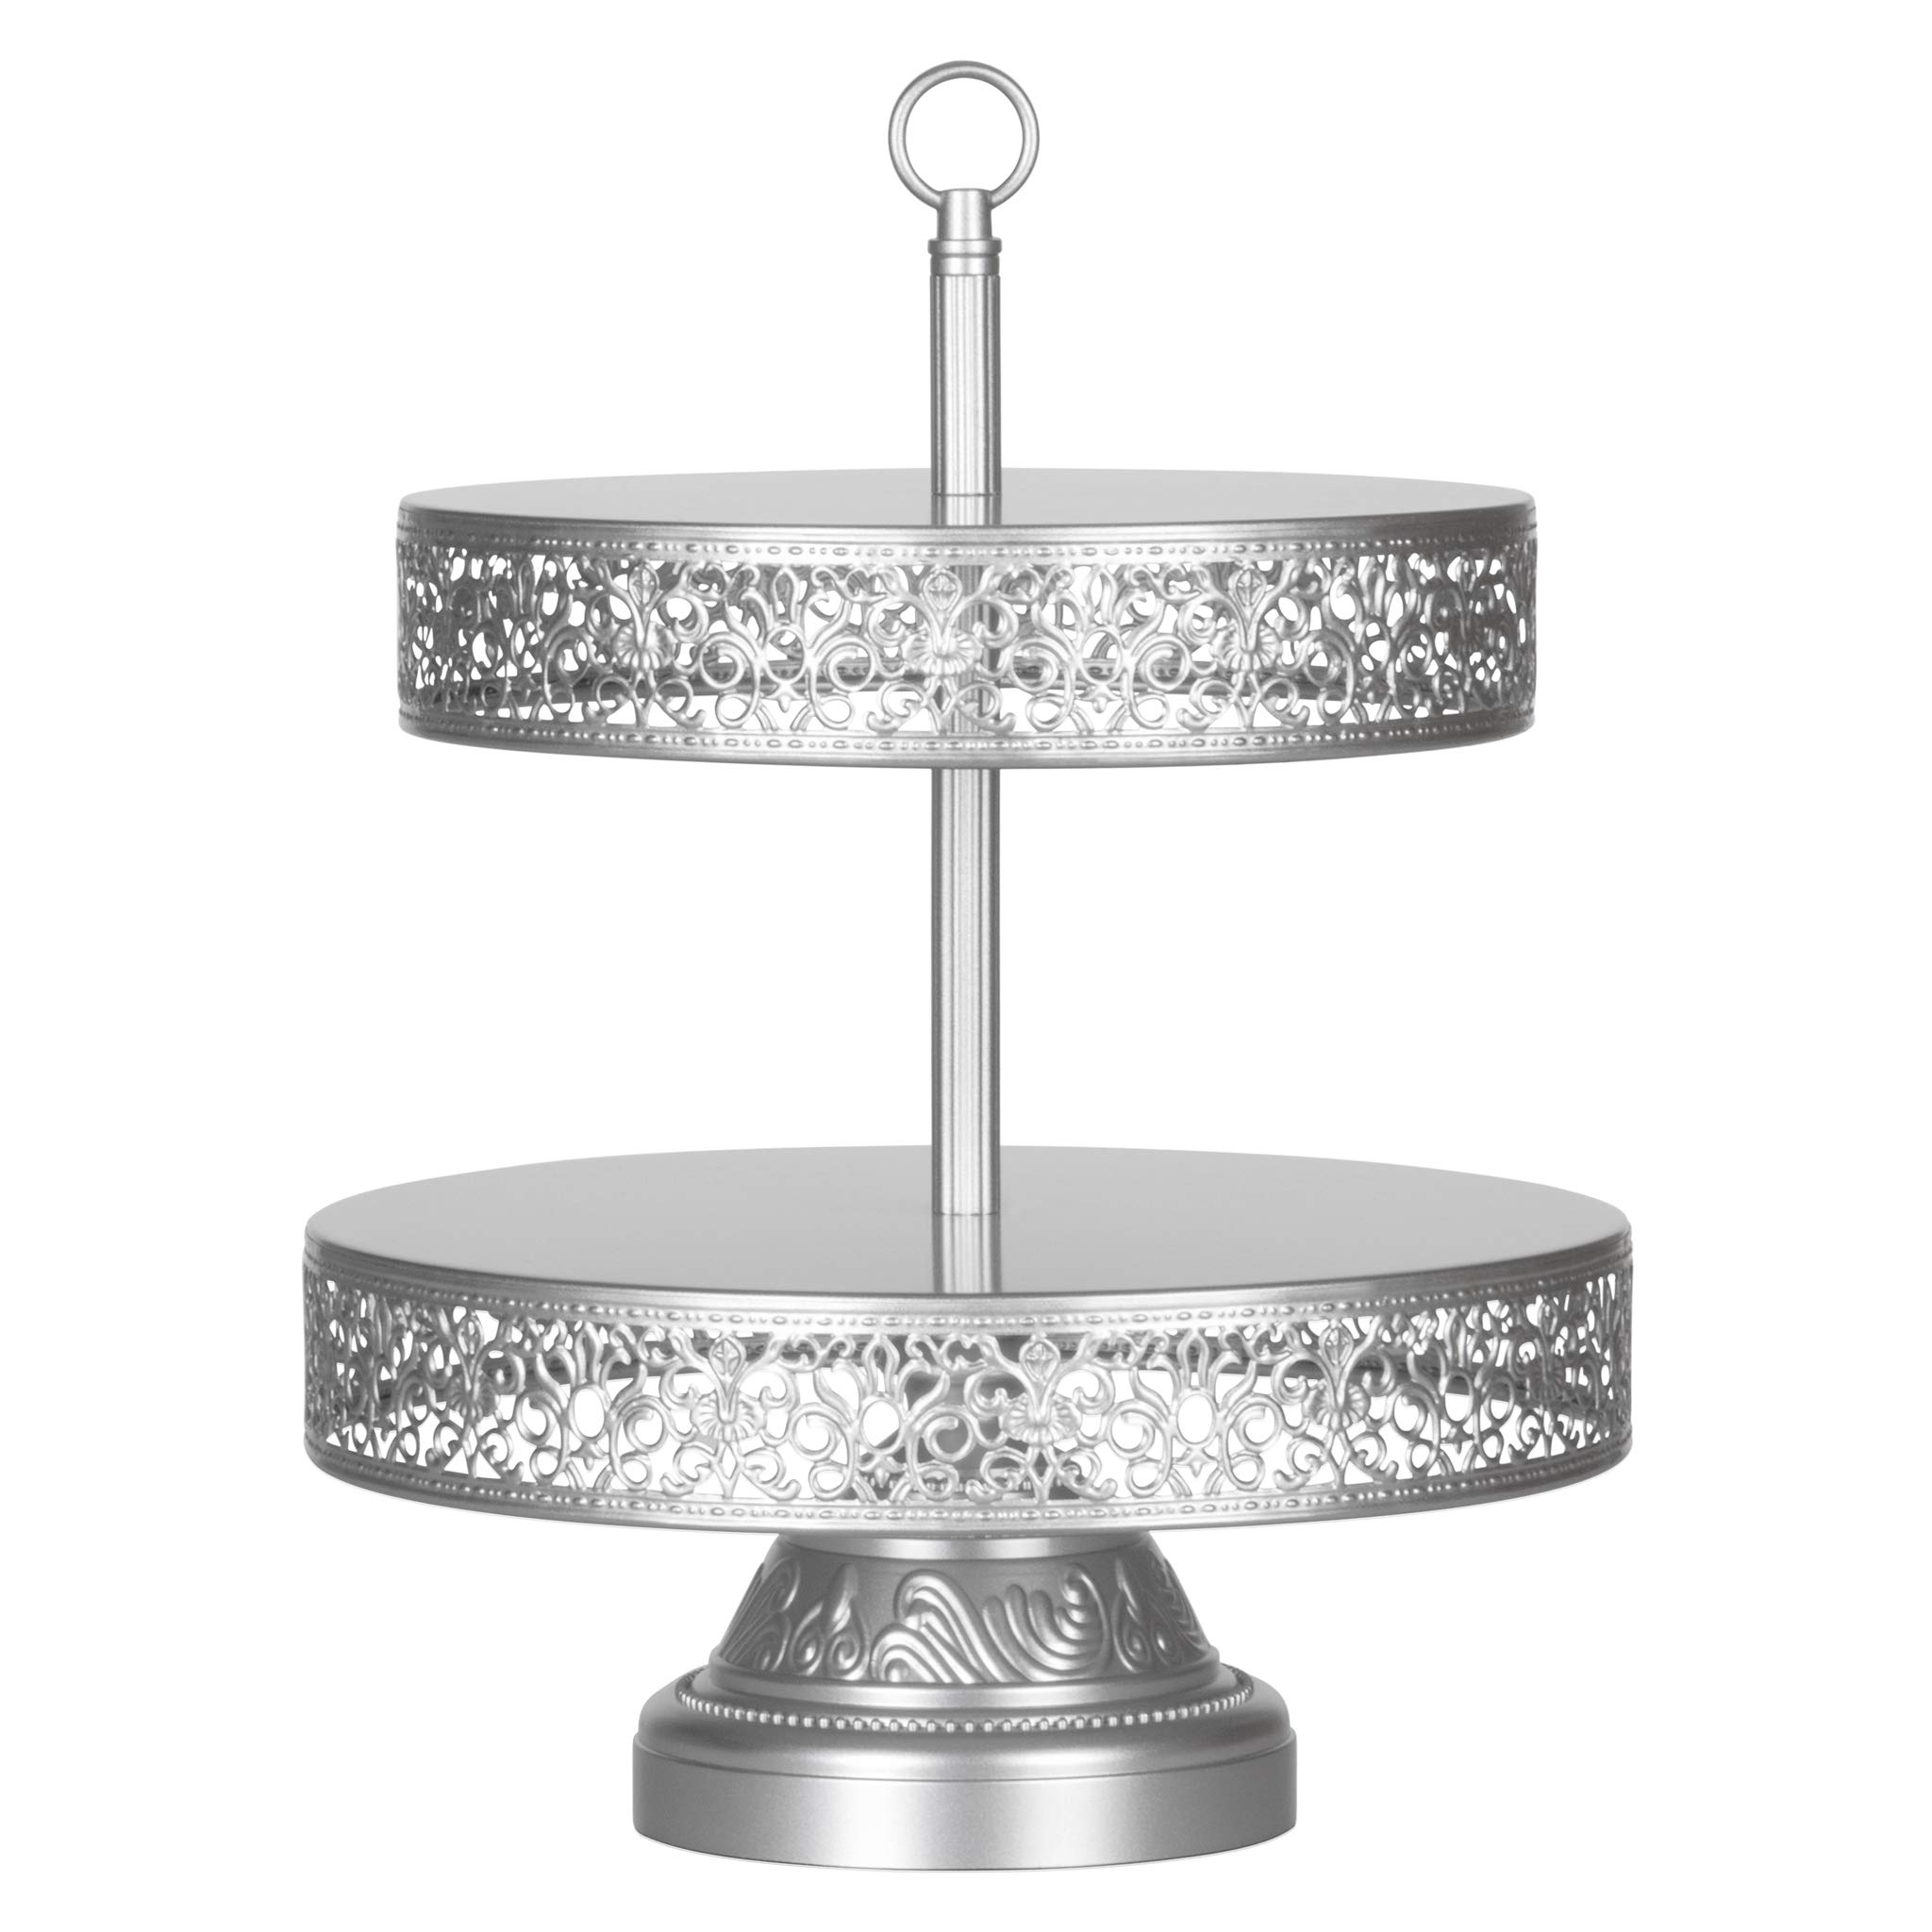 Amalfi Decor 2 Tier Dessert Cupcake Stand, Large Pastry Candy Cookie Tower Holder Plate for Wedding Event Birthday Party, Round Metal Pedestal Tray, Silver by Amalfi Décor